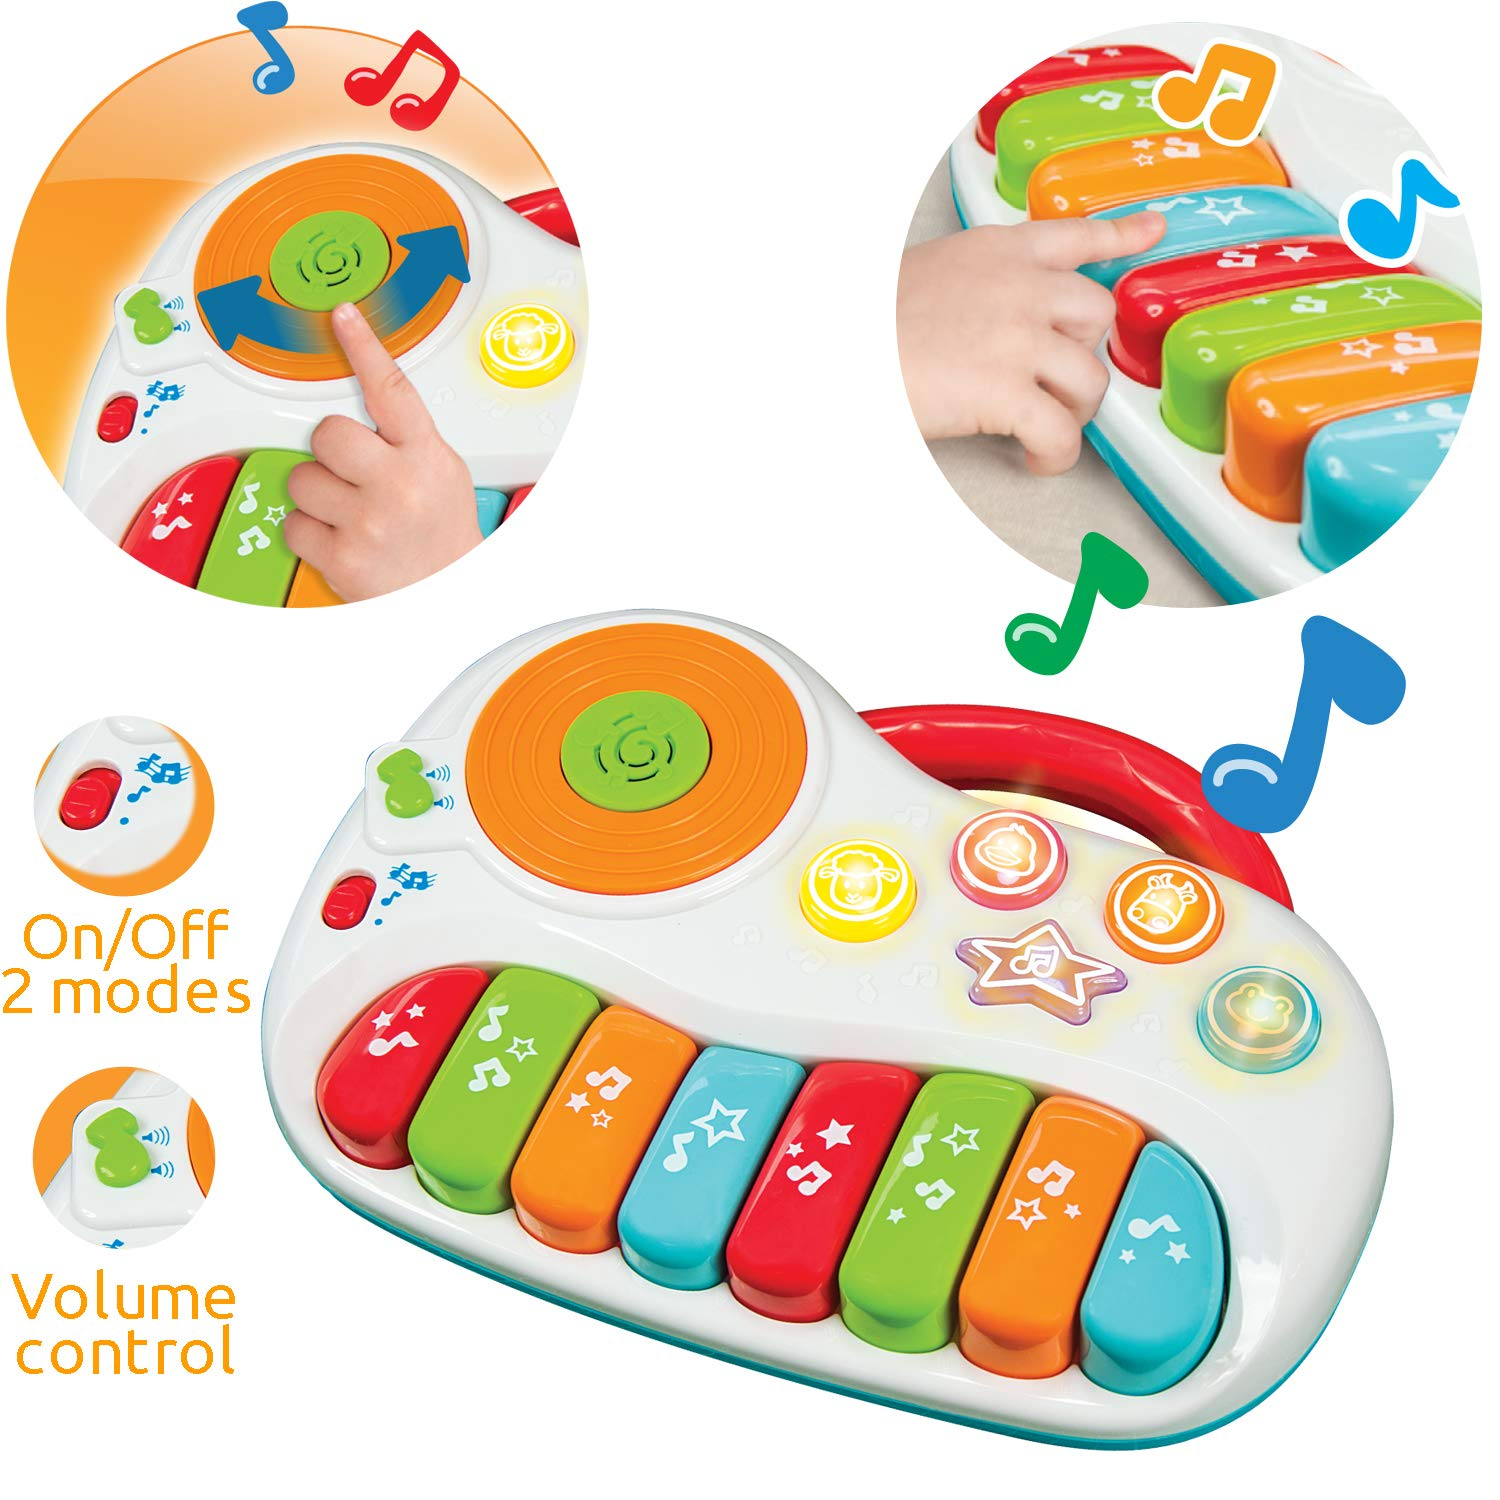 Toddler Piano Baby Musical Instruments for Educational Development Electronic Play Piano Learning Toy with DJ Mixer Kids Keyboard 1-5 Years Age Boxiki